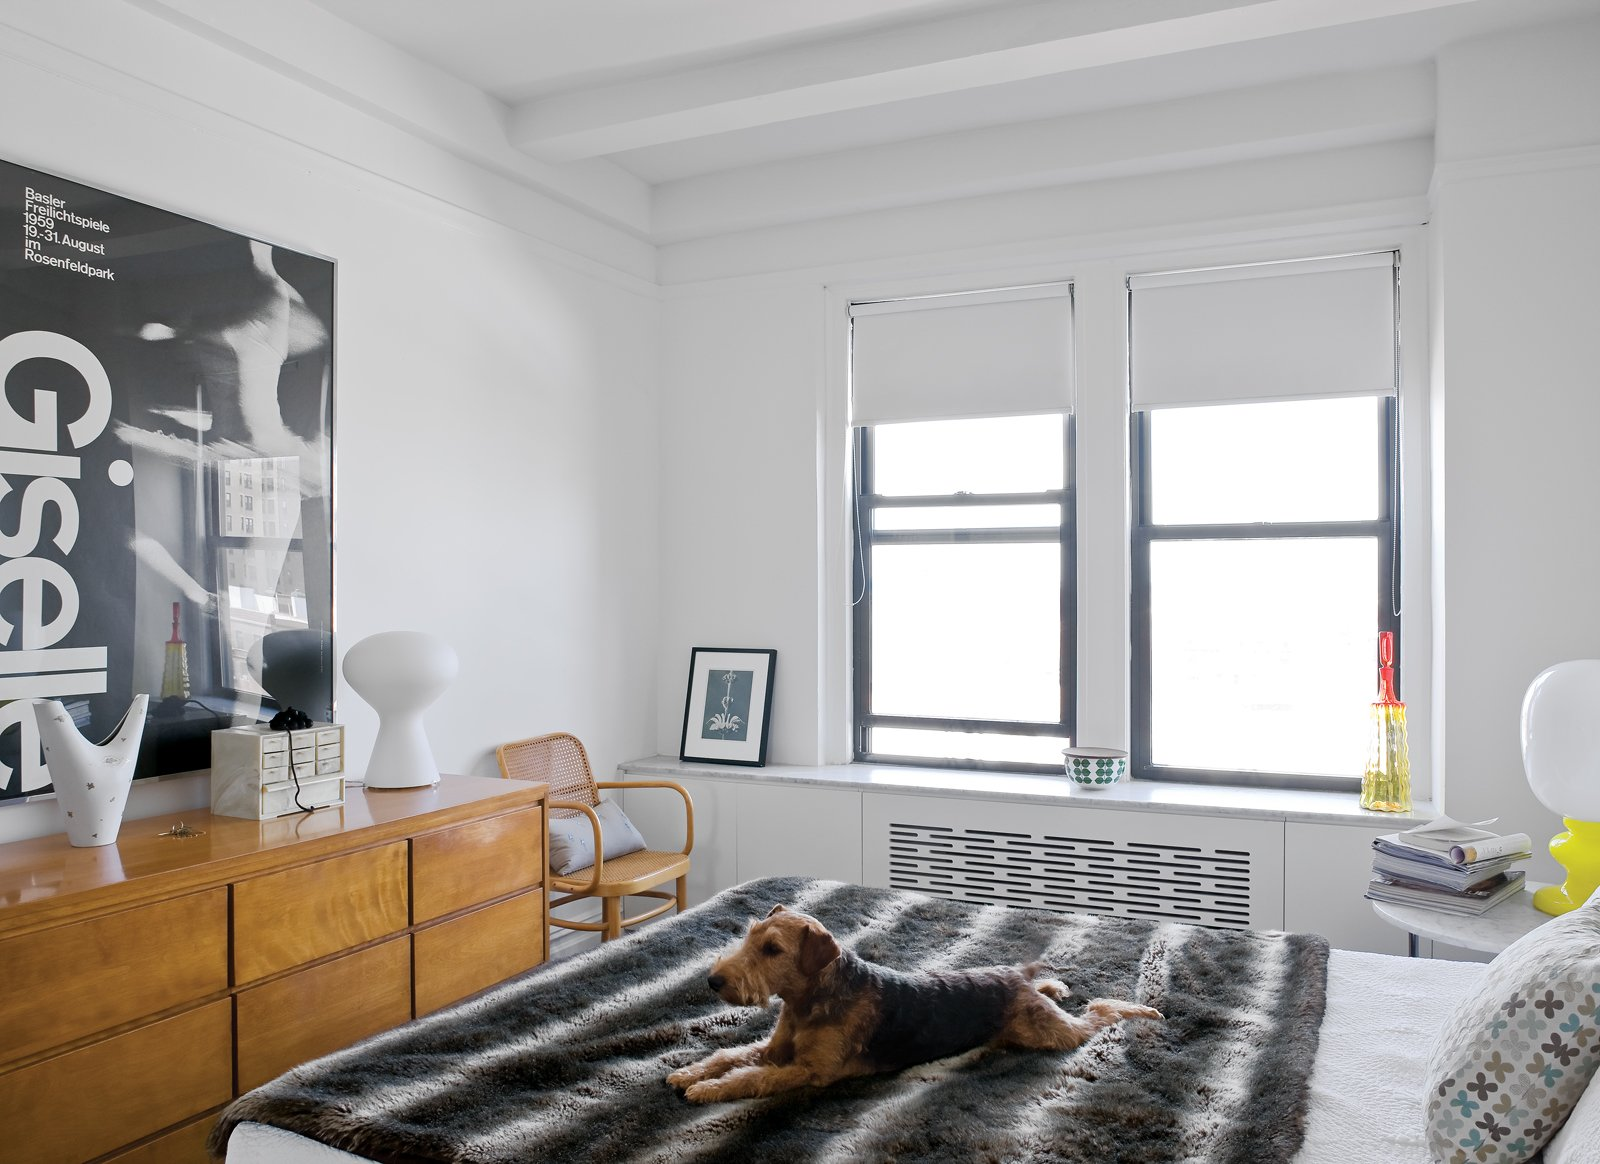 Beneath the windows in the living room and the bedroom is the clever built-in radiator screen/storage system designed by Joshua Pulver and Mike. The bedroom dresser is vintage Russel Wright. Tagged: Bedroom, Bed, and Dresser.  Inside 7 Modern Renovations in Brooklyn by Aileen Kwun from Creative Renovation in Brooklyn